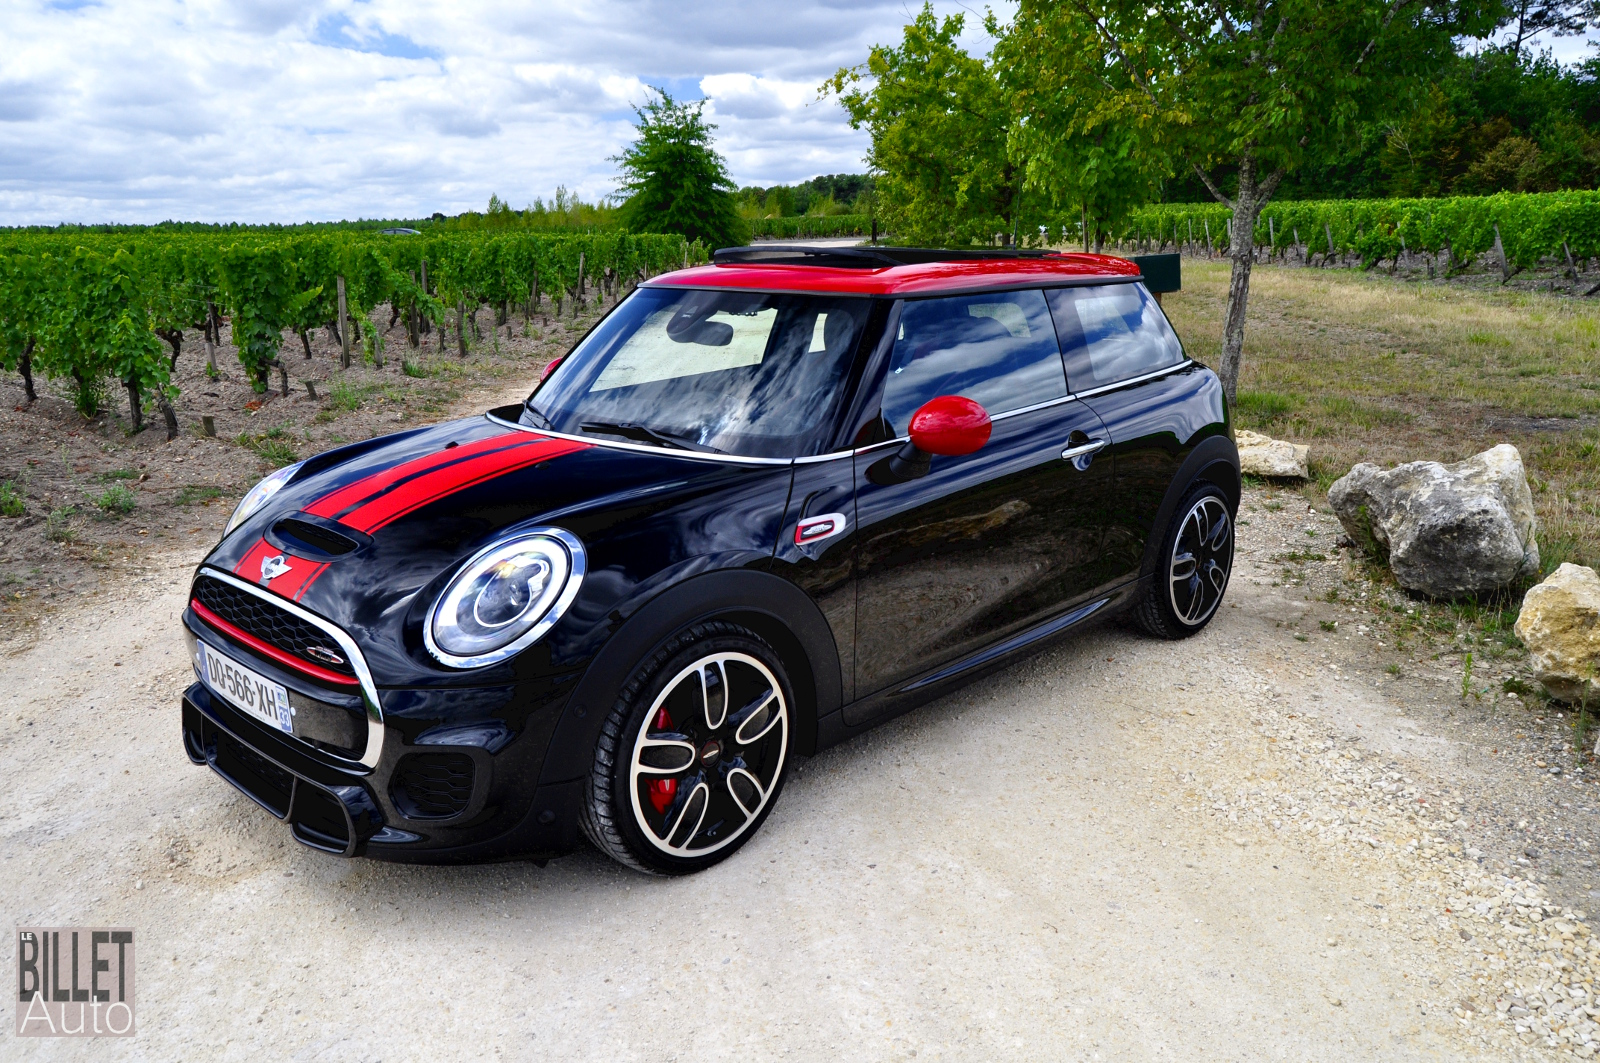 essai mini john cooper works la polissonne polic e le billet auto passion automobile. Black Bedroom Furniture Sets. Home Design Ideas